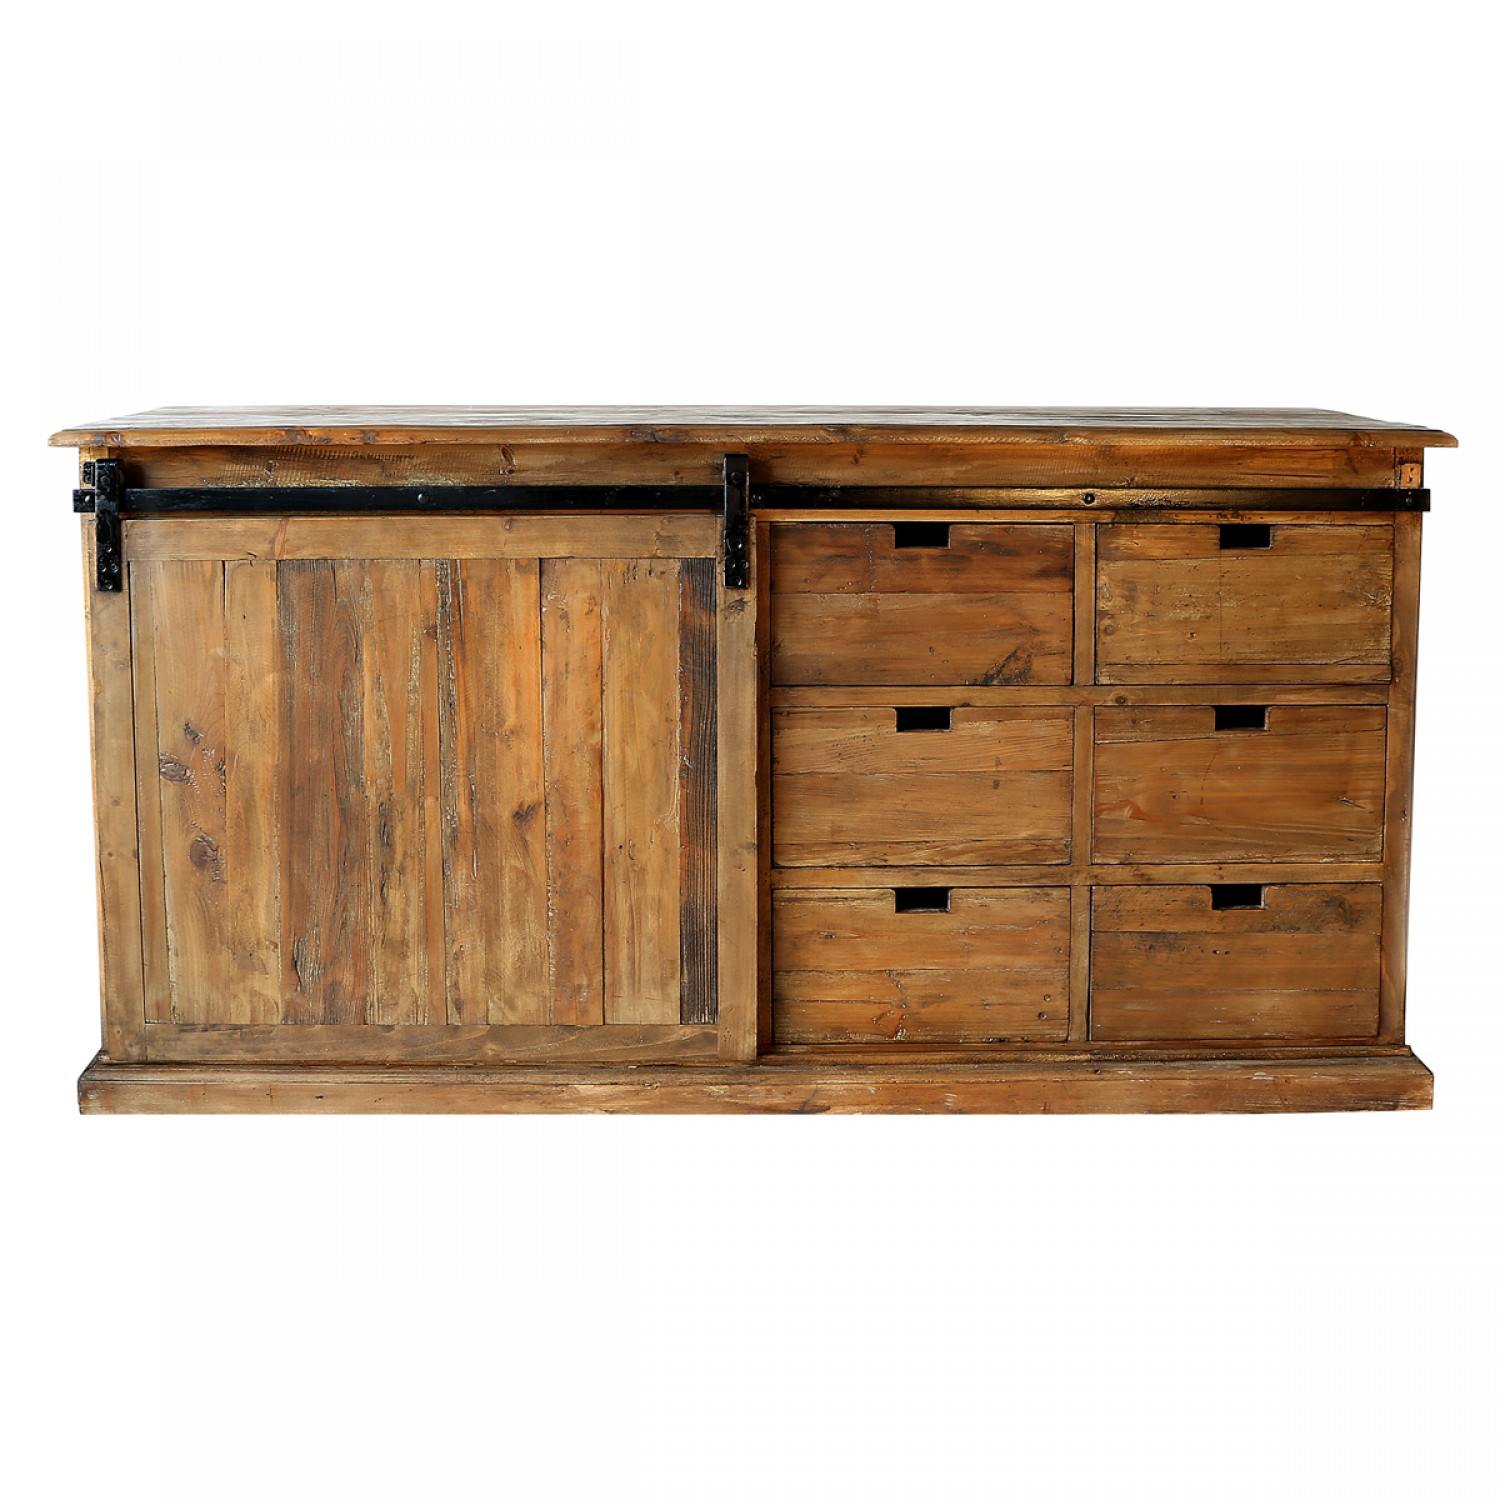 buffet 6 tiroirs porte coulissante en bois recycl koya design. Black Bedroom Furniture Sets. Home Design Ideas